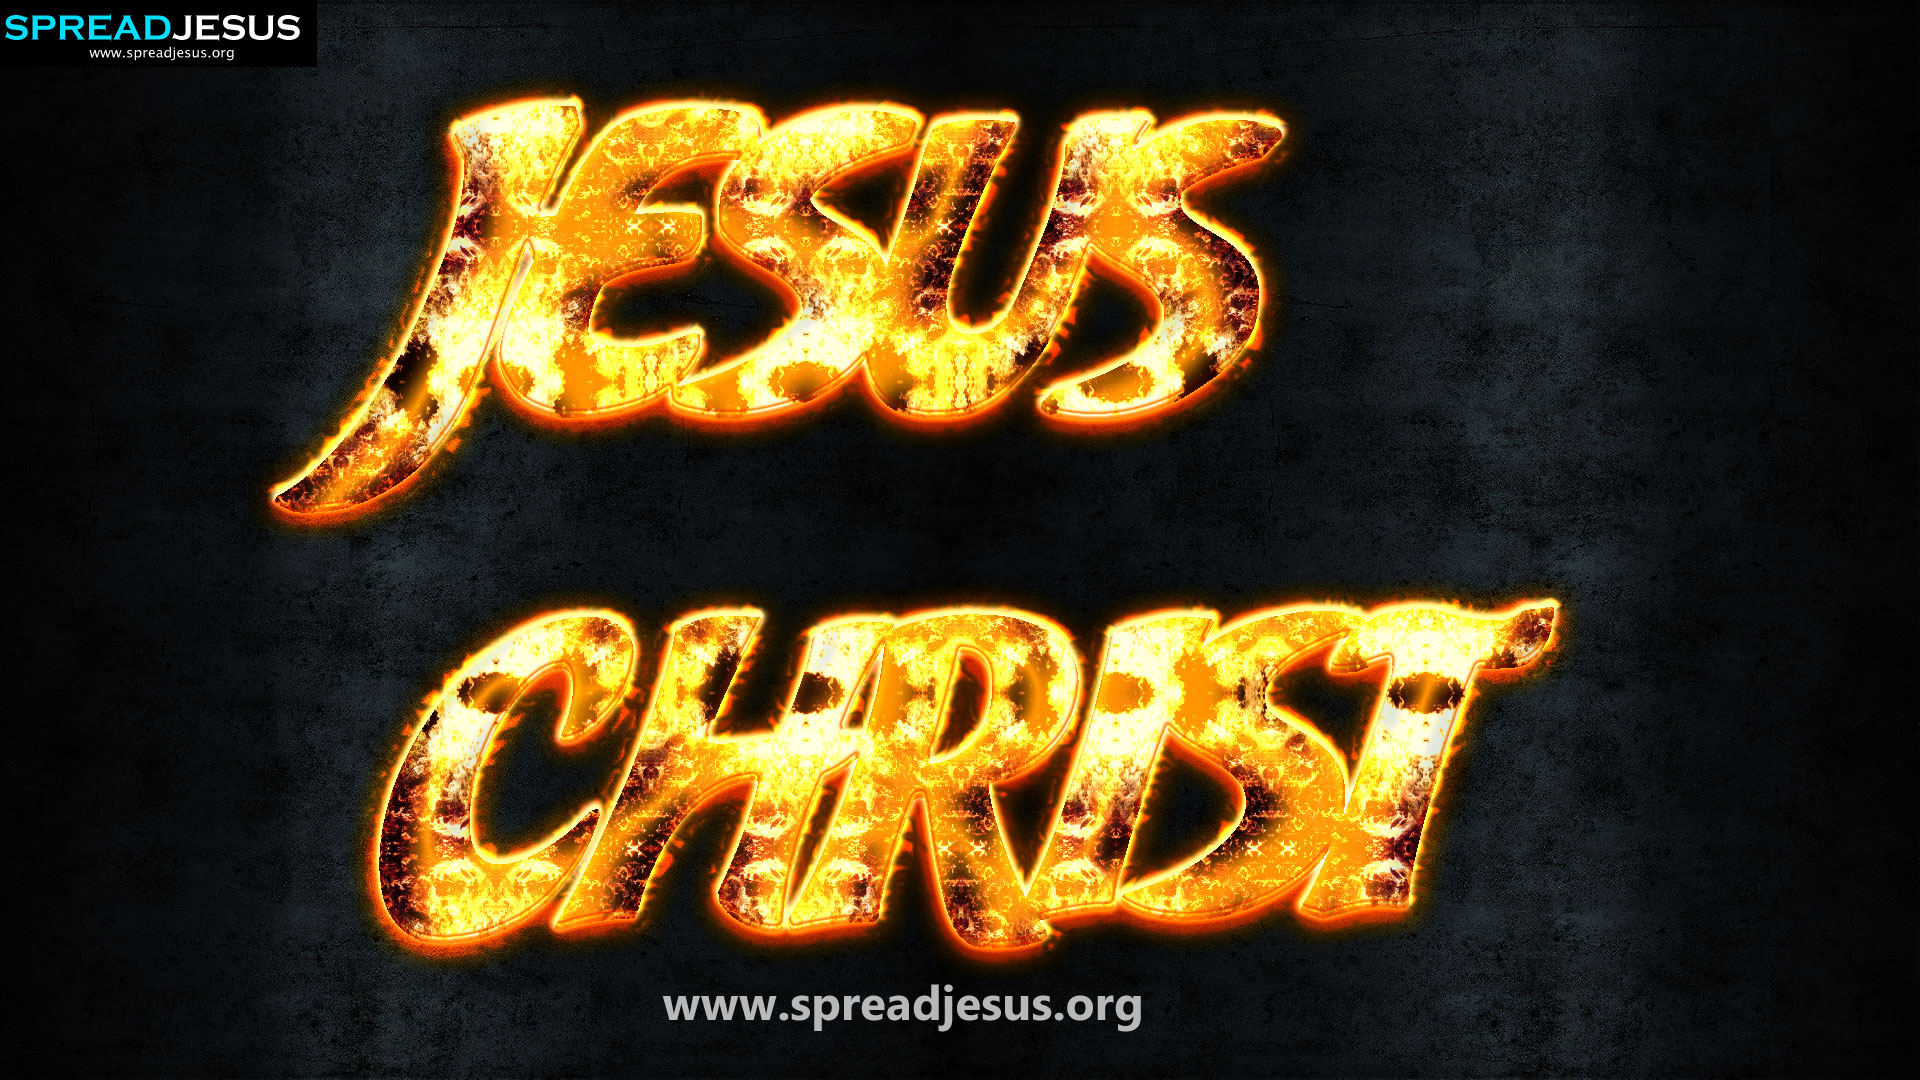 JESUS CHRIST NAME -JESUS CHRIST HD WALLPAPERS DOWNLOAD